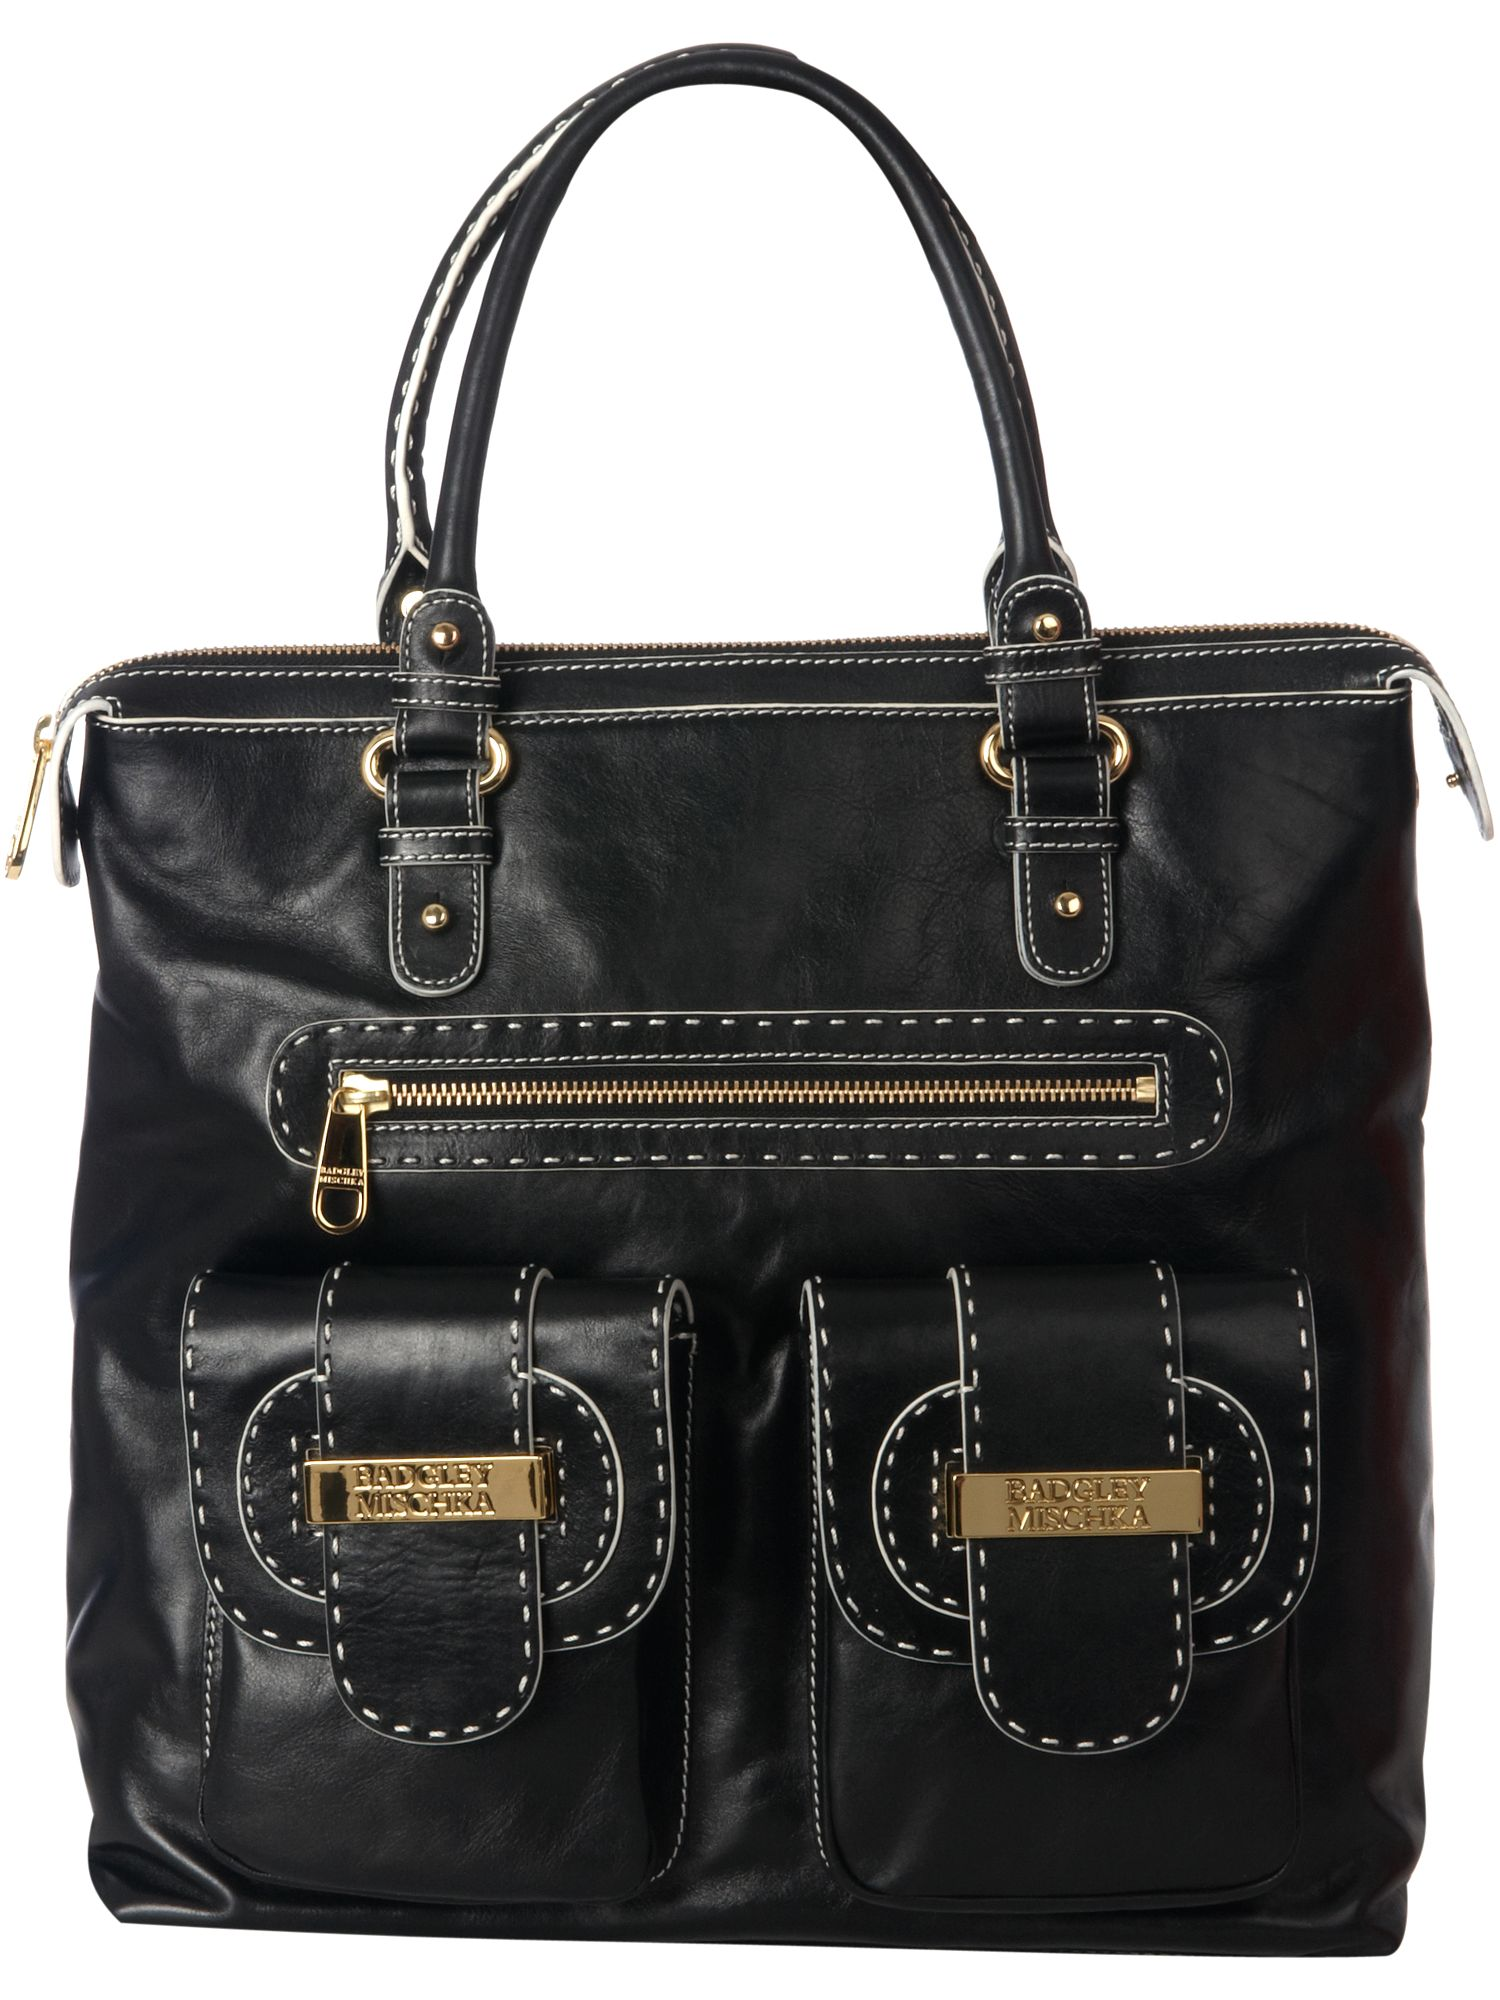 Ally extra large leather tote bag.